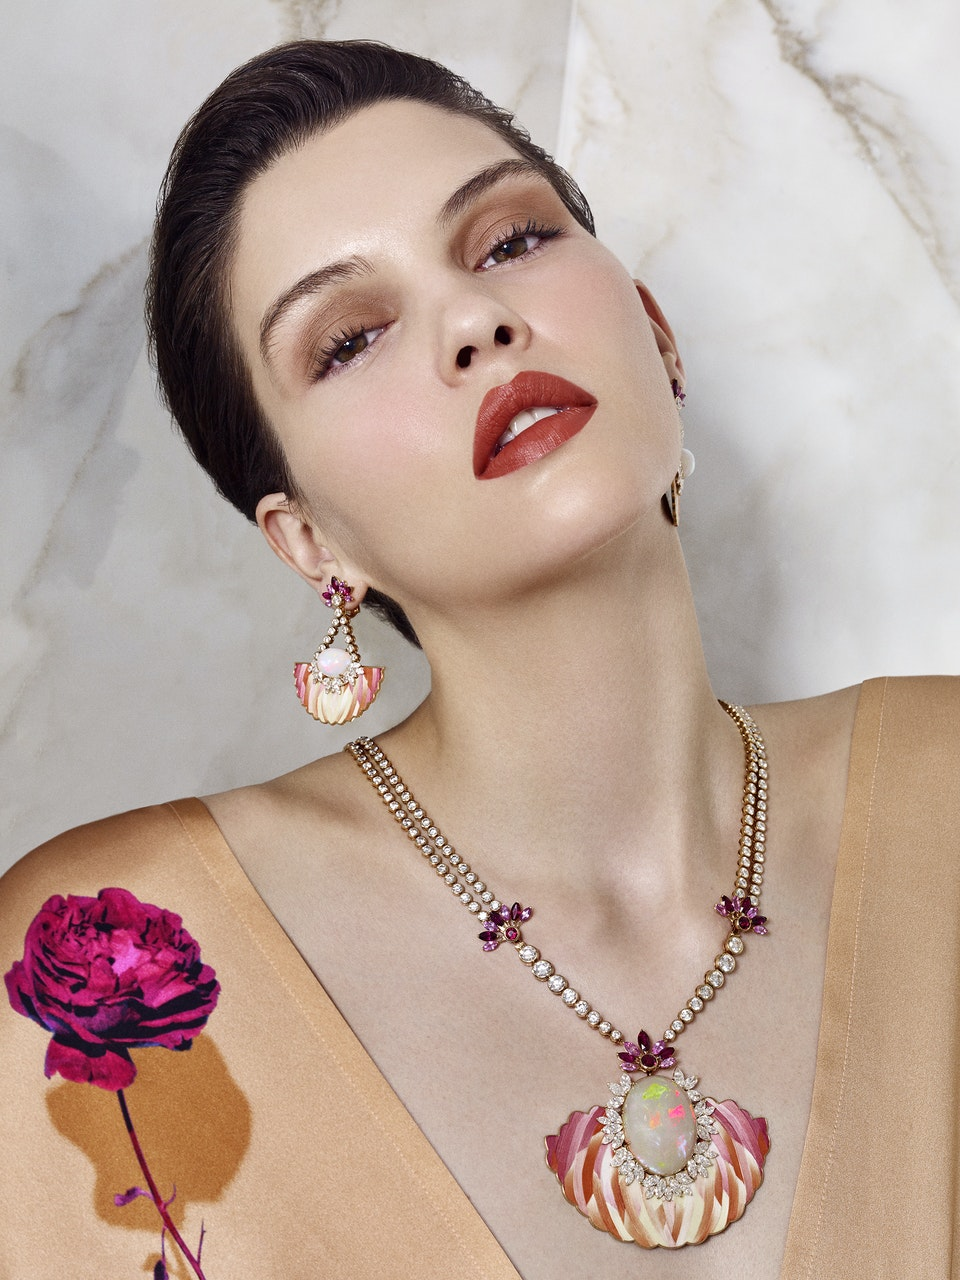 Piaget for Mojeh